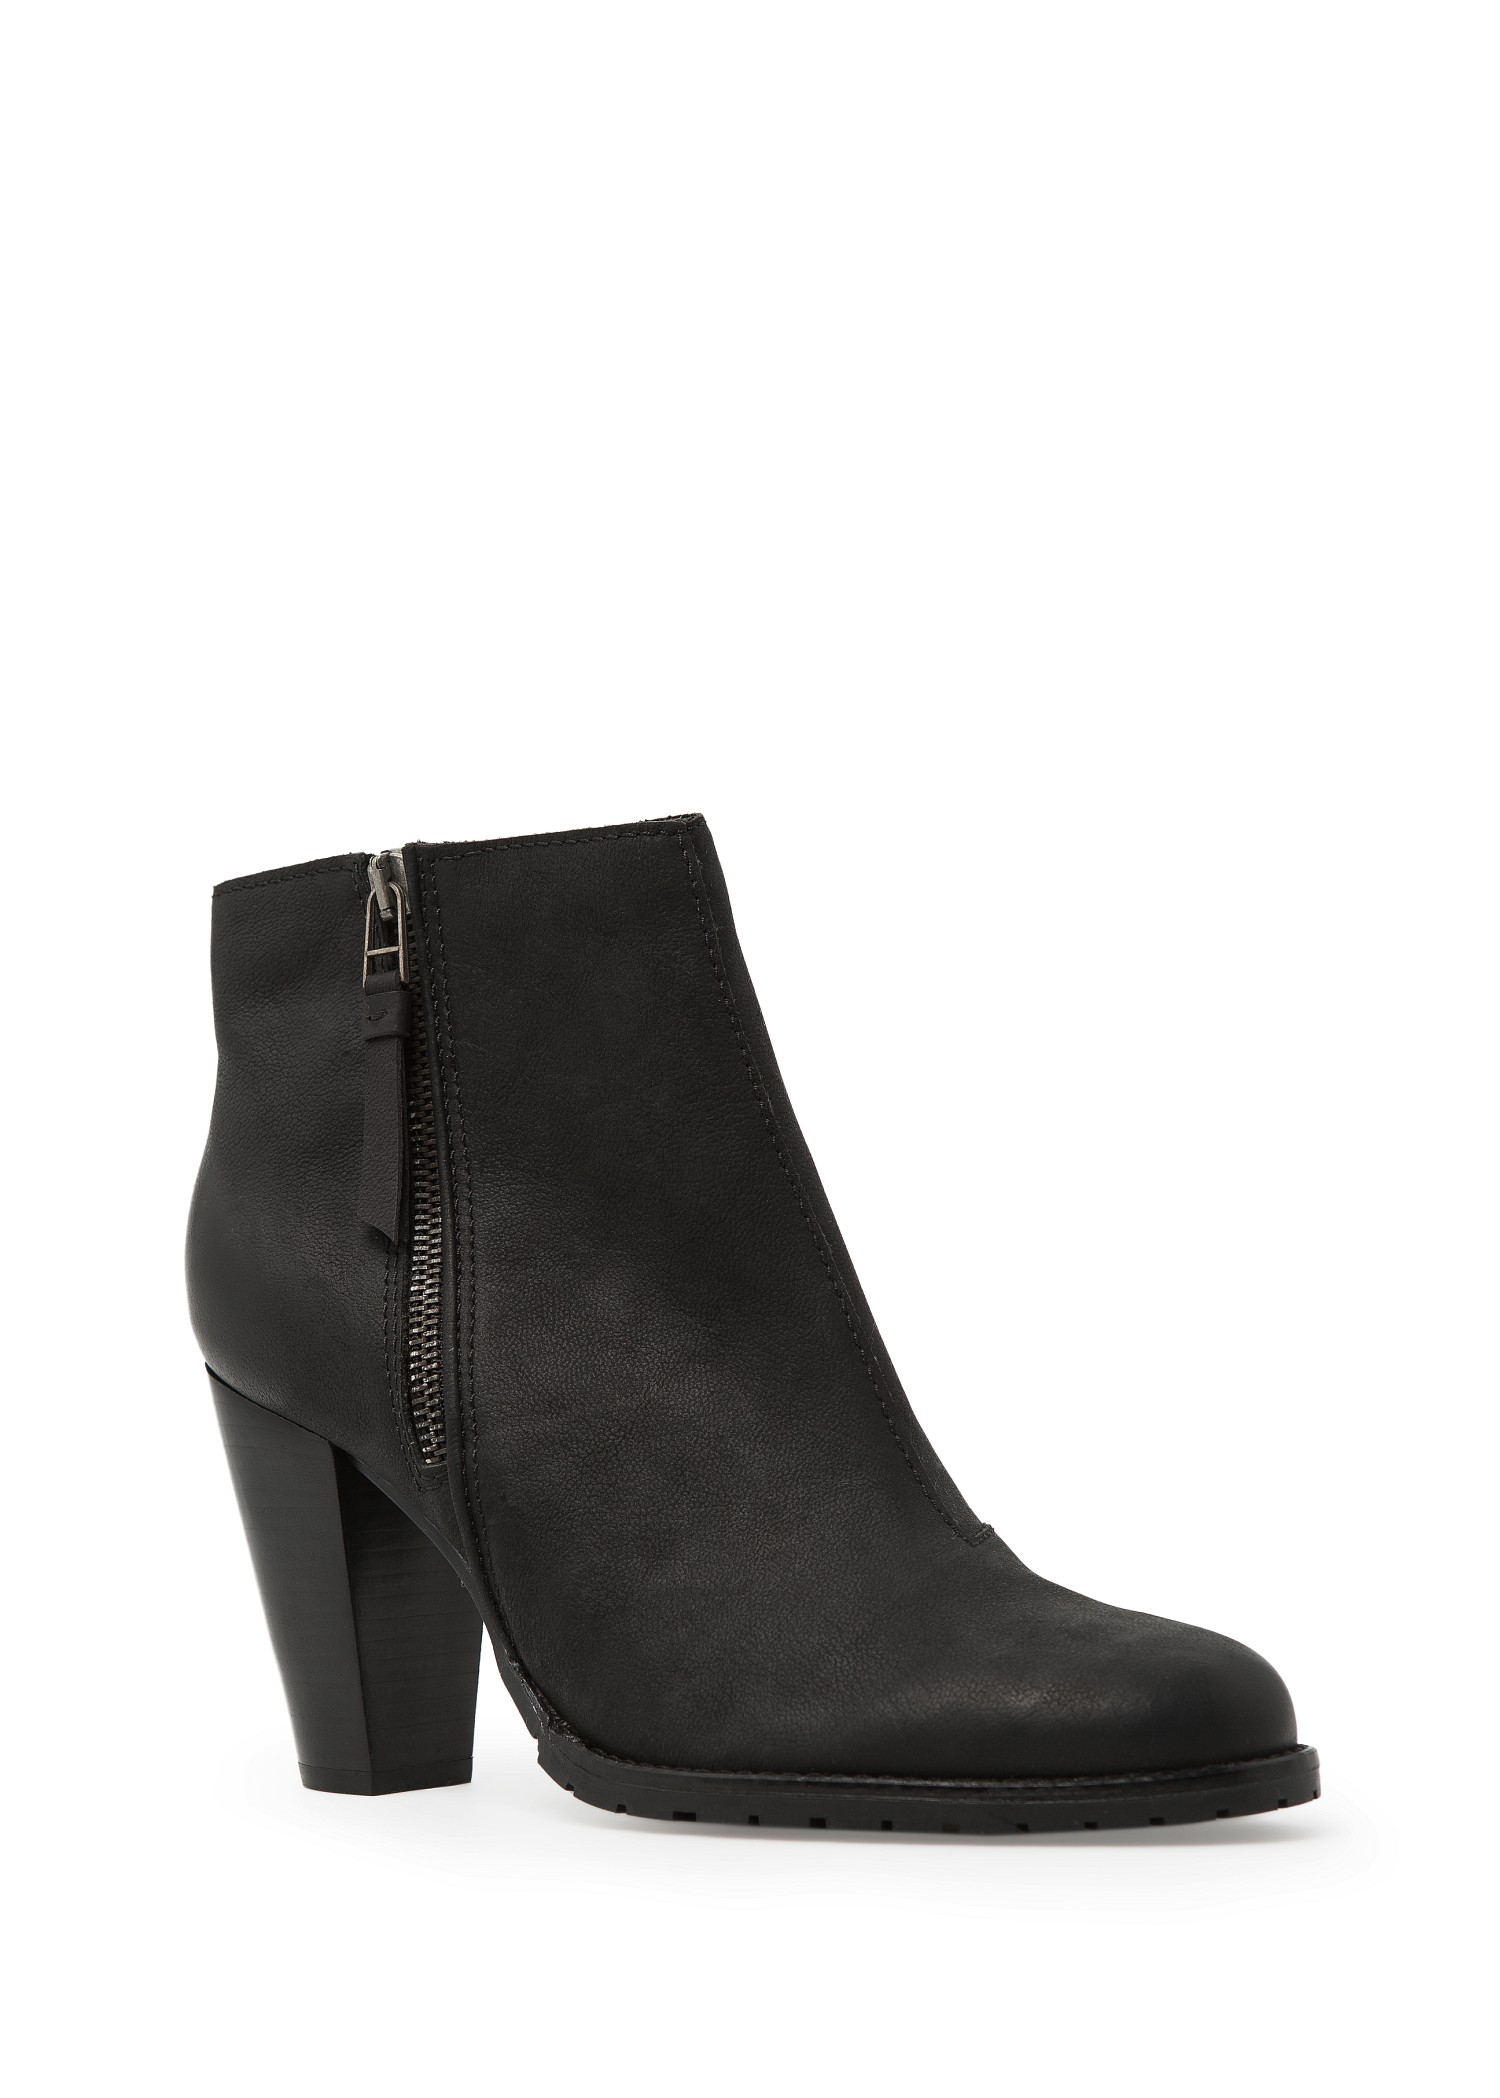 Mango Wooden Heel Leather Ankle Boots In Black Lyst